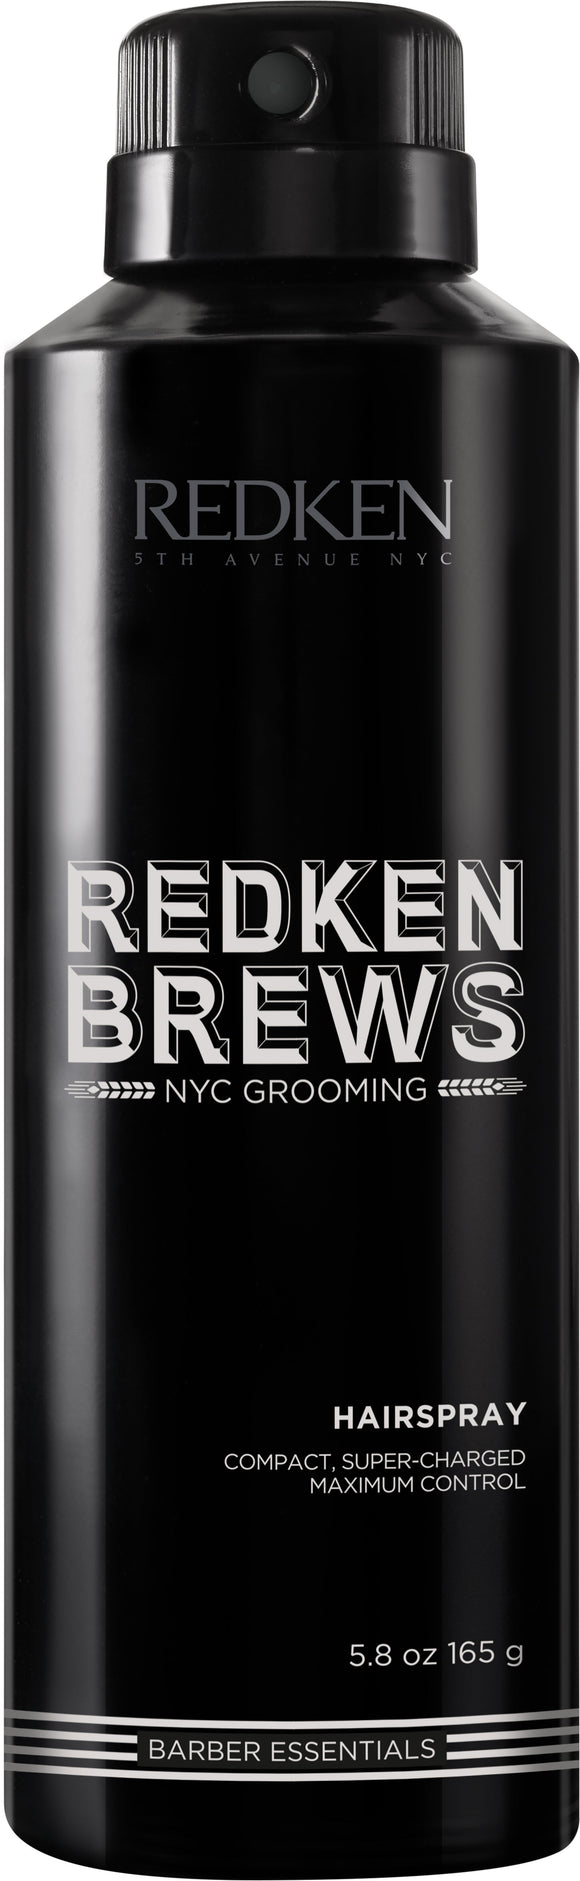 Redken Brews Hairspray - TanglesOnline.Com